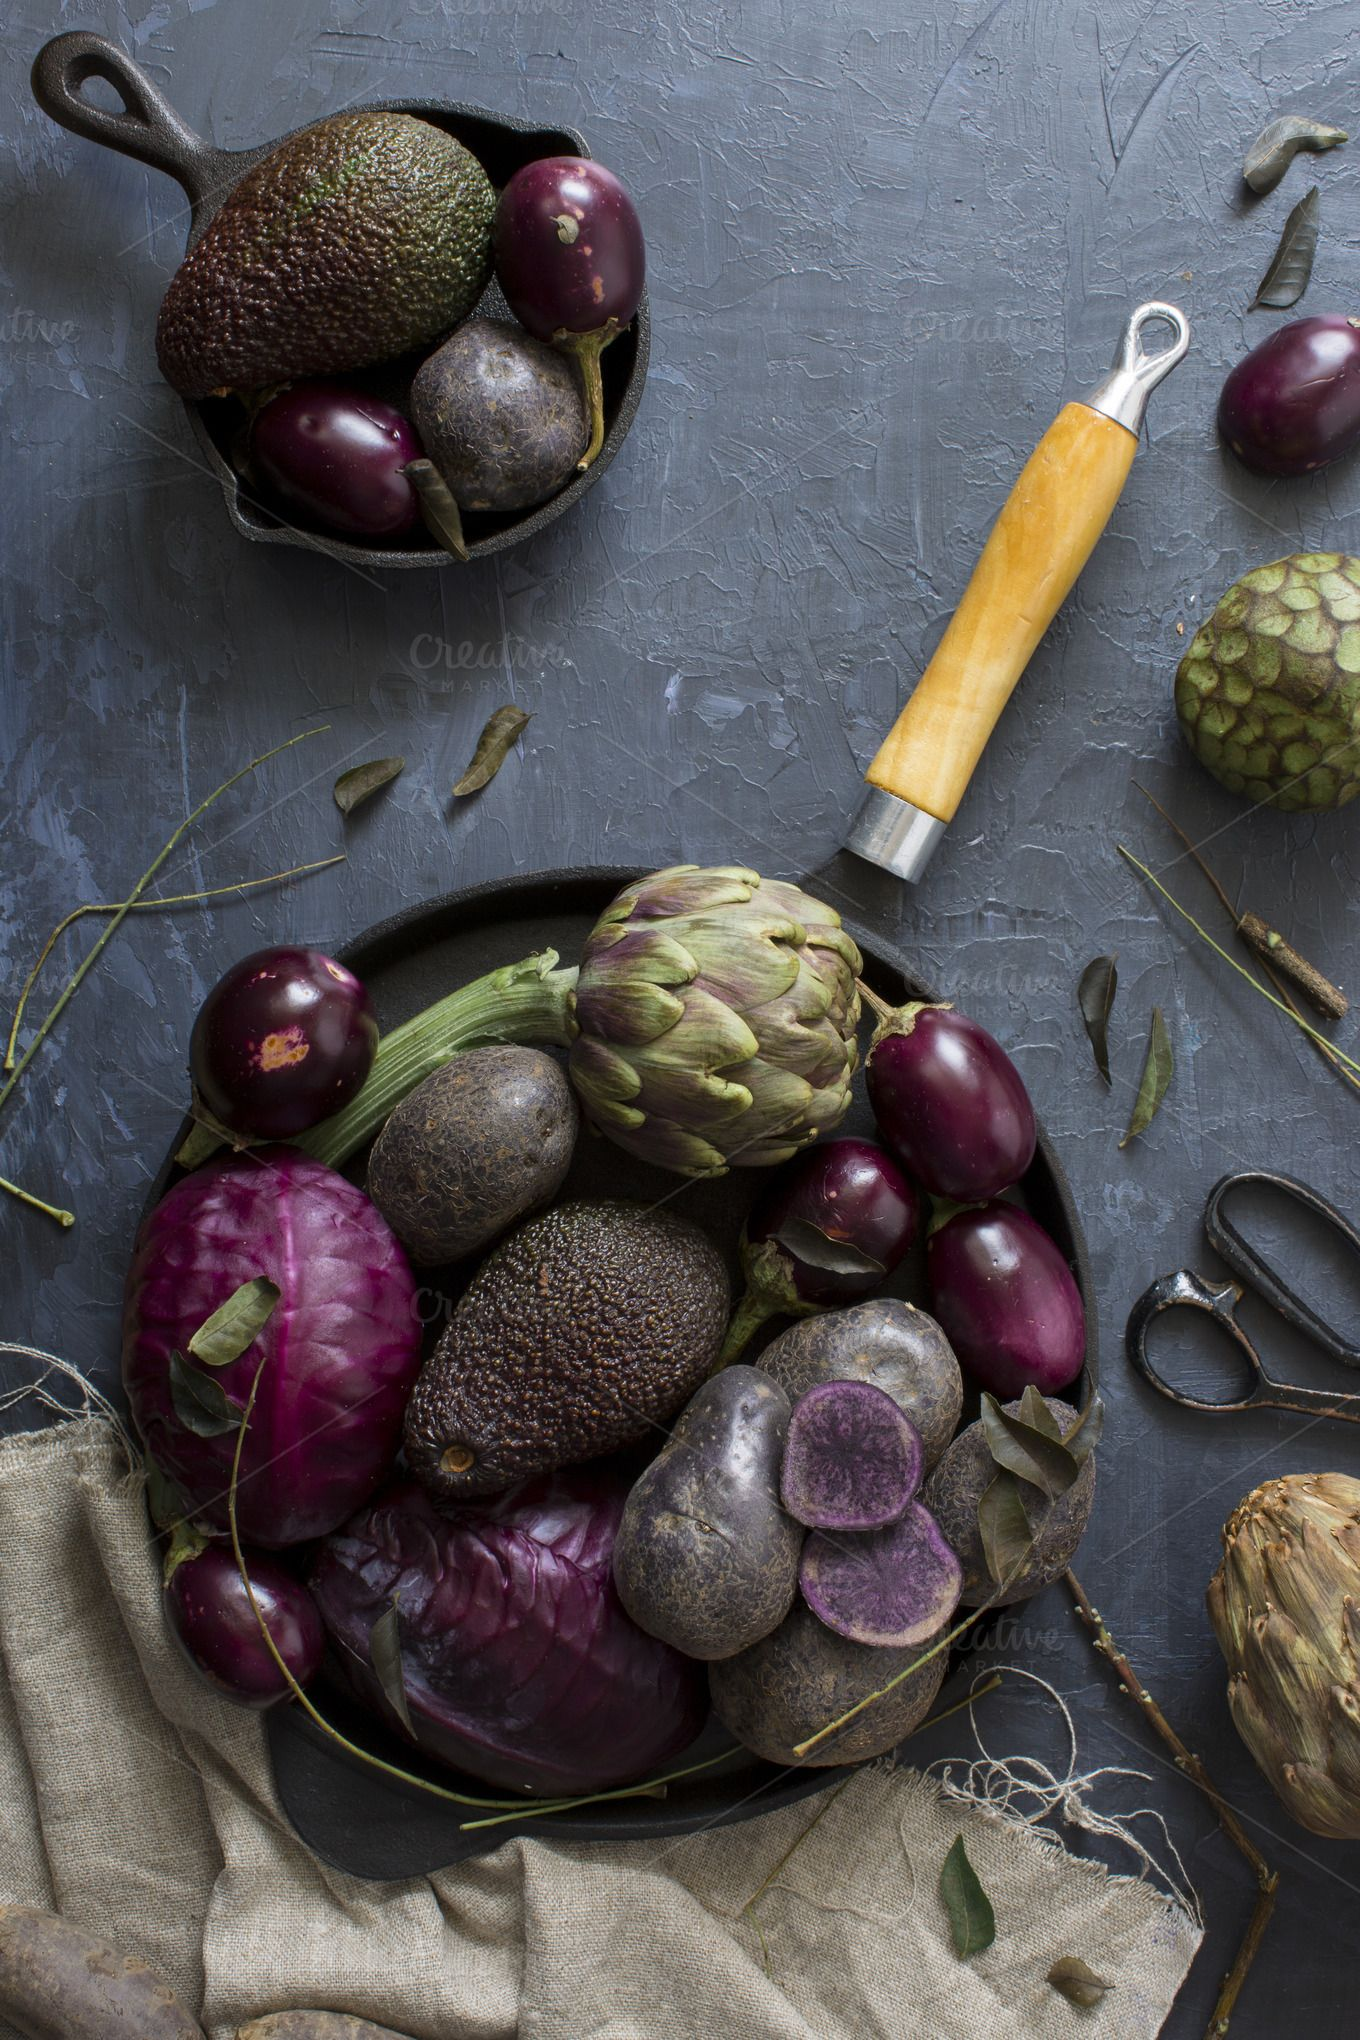 Purple Fruits And Vegetables On A Black Background Vegetables Food Fruits And Vegetables